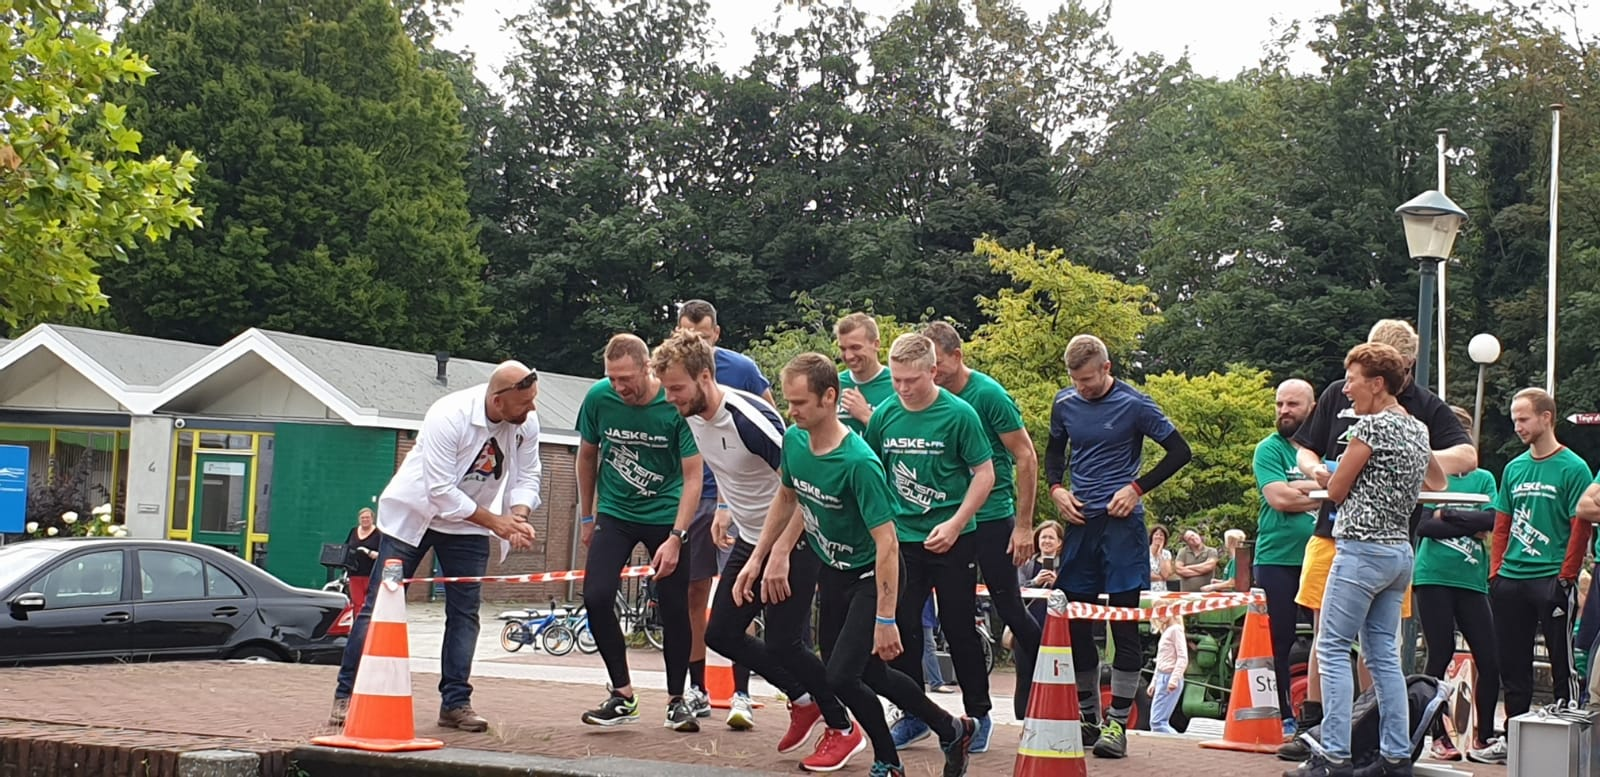 2019-08-17 | Marco Kroon geeft startschot voor Survival Run in Wergea